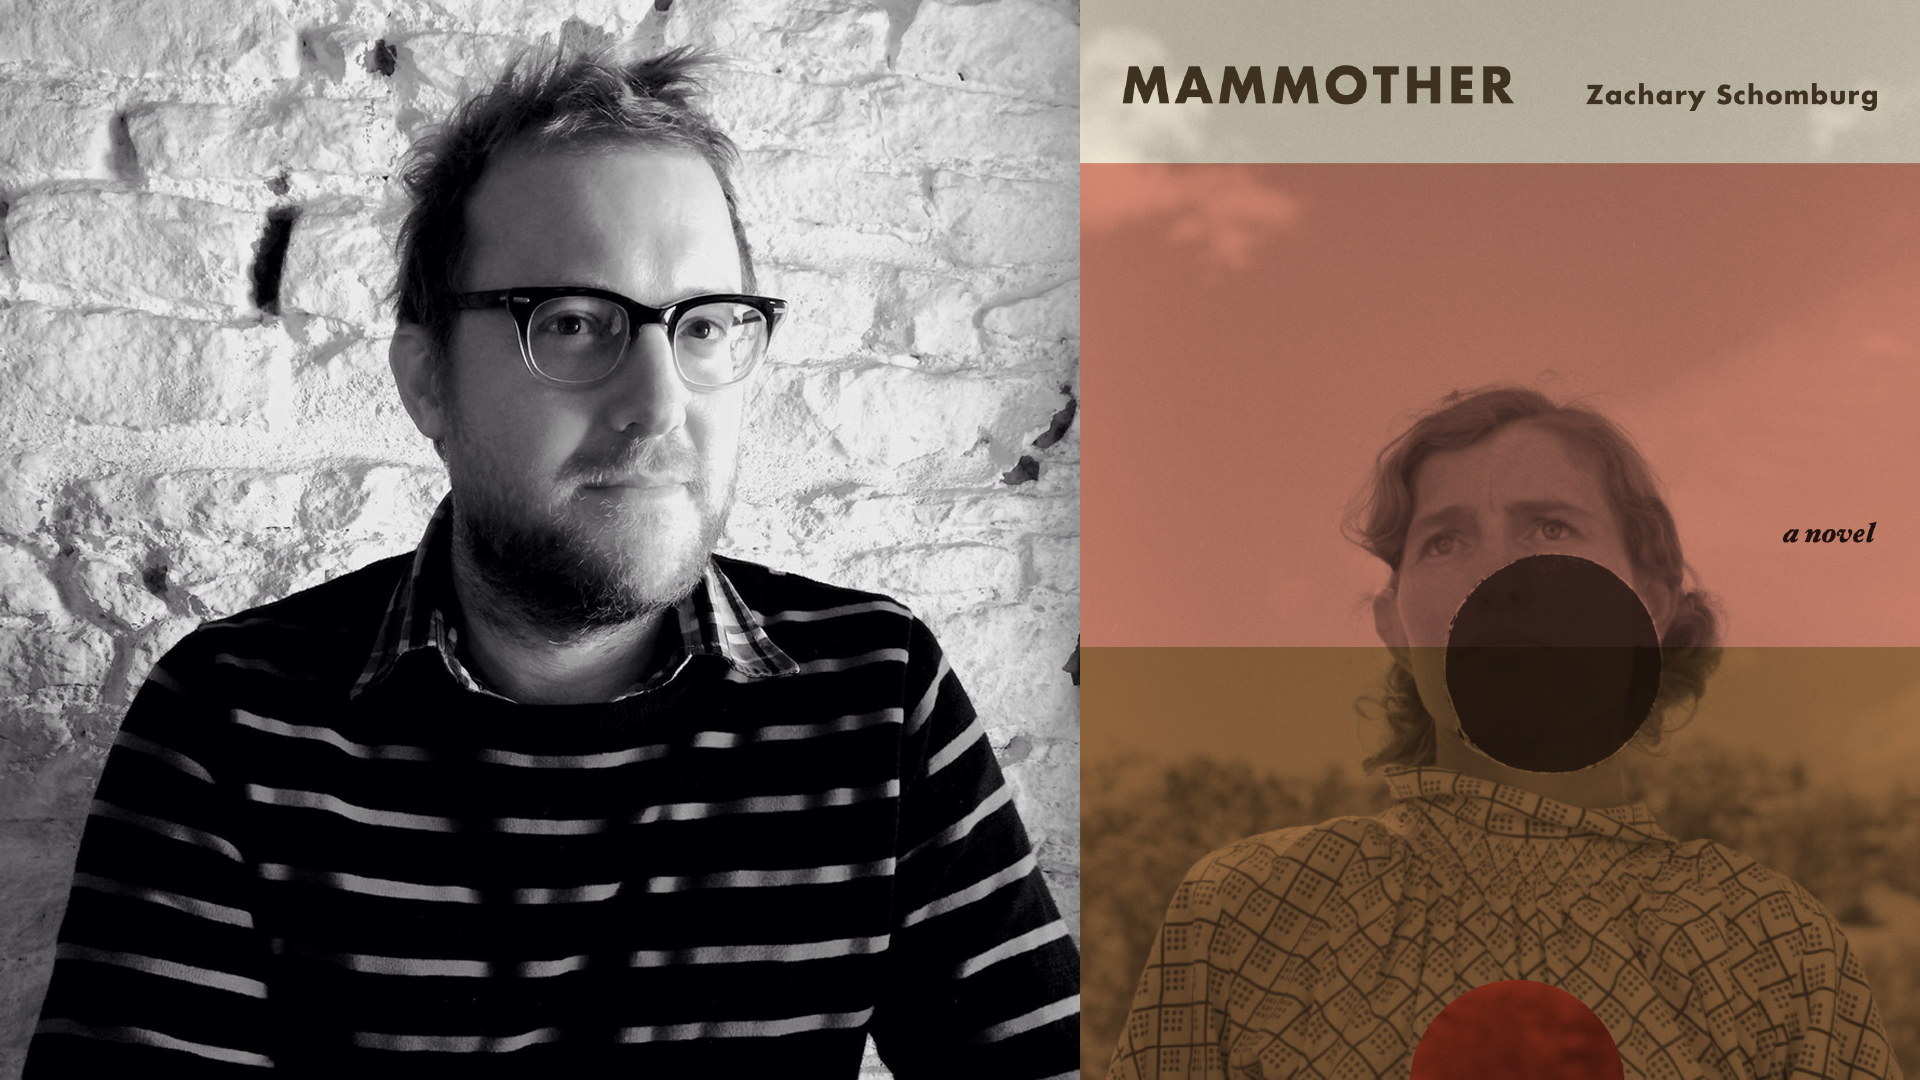 Photo of Zachary Schomburg and the cover of his novel MAMMOTHER